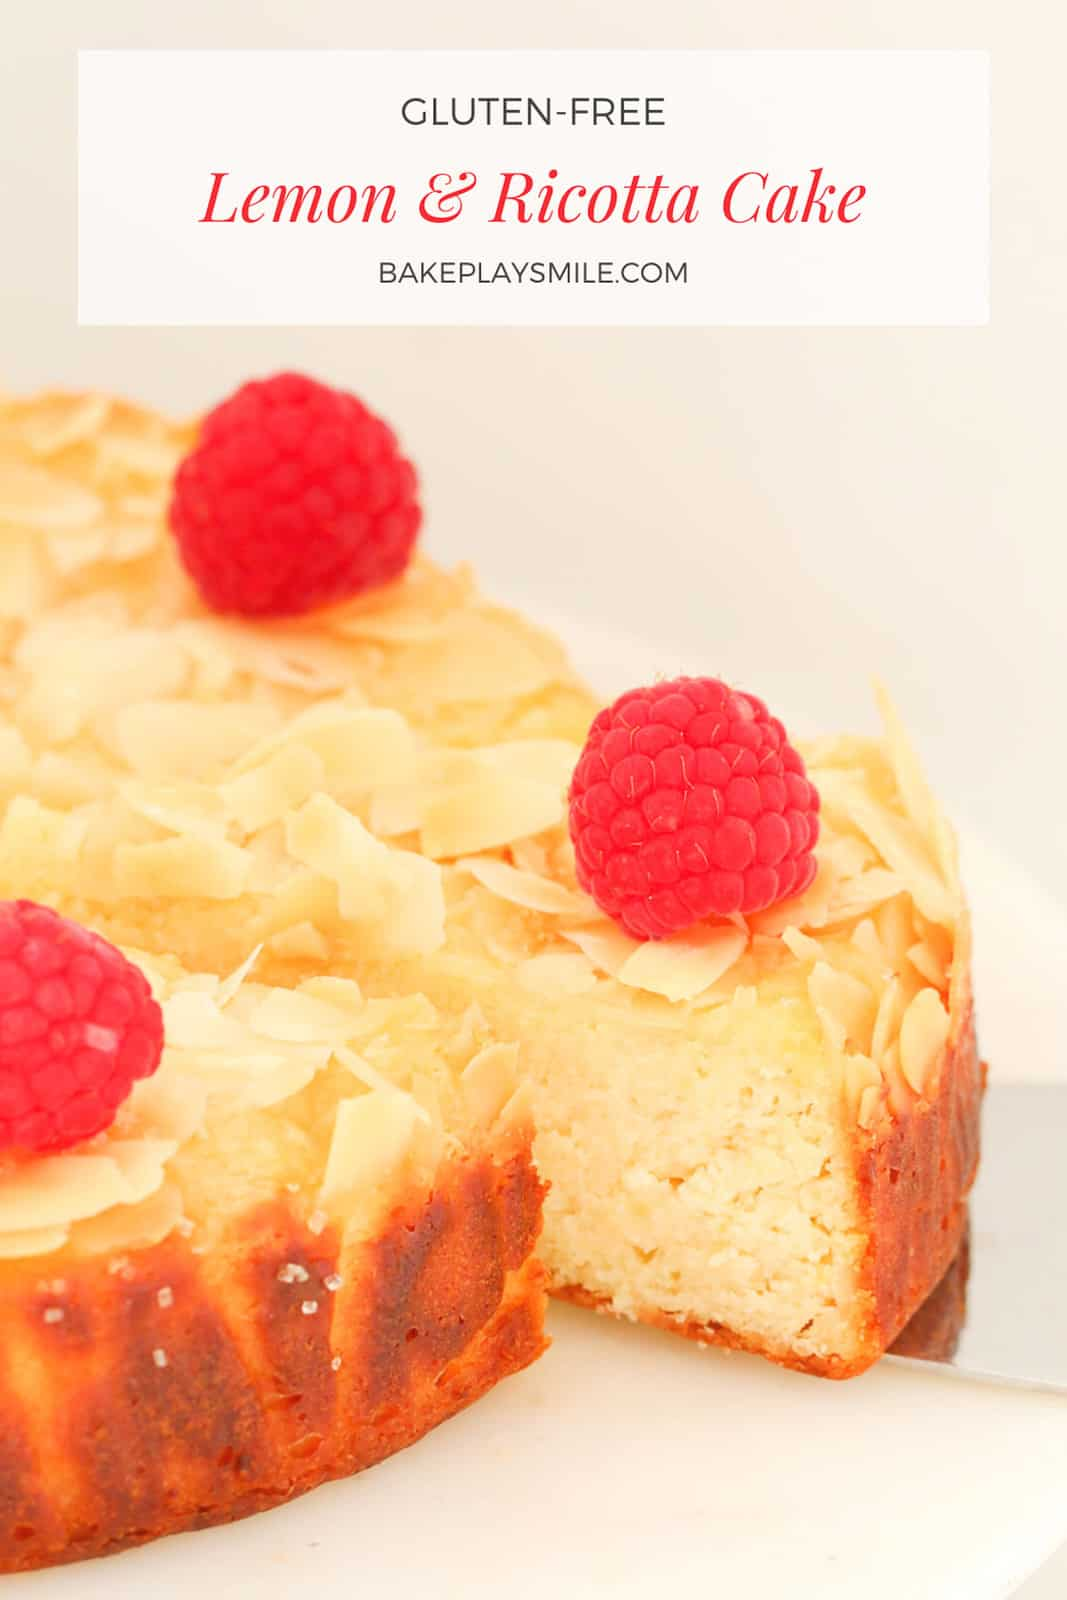 Lemon & Ricotta cake decorated with fresh raspberries and flaked almonds on a white cake stand